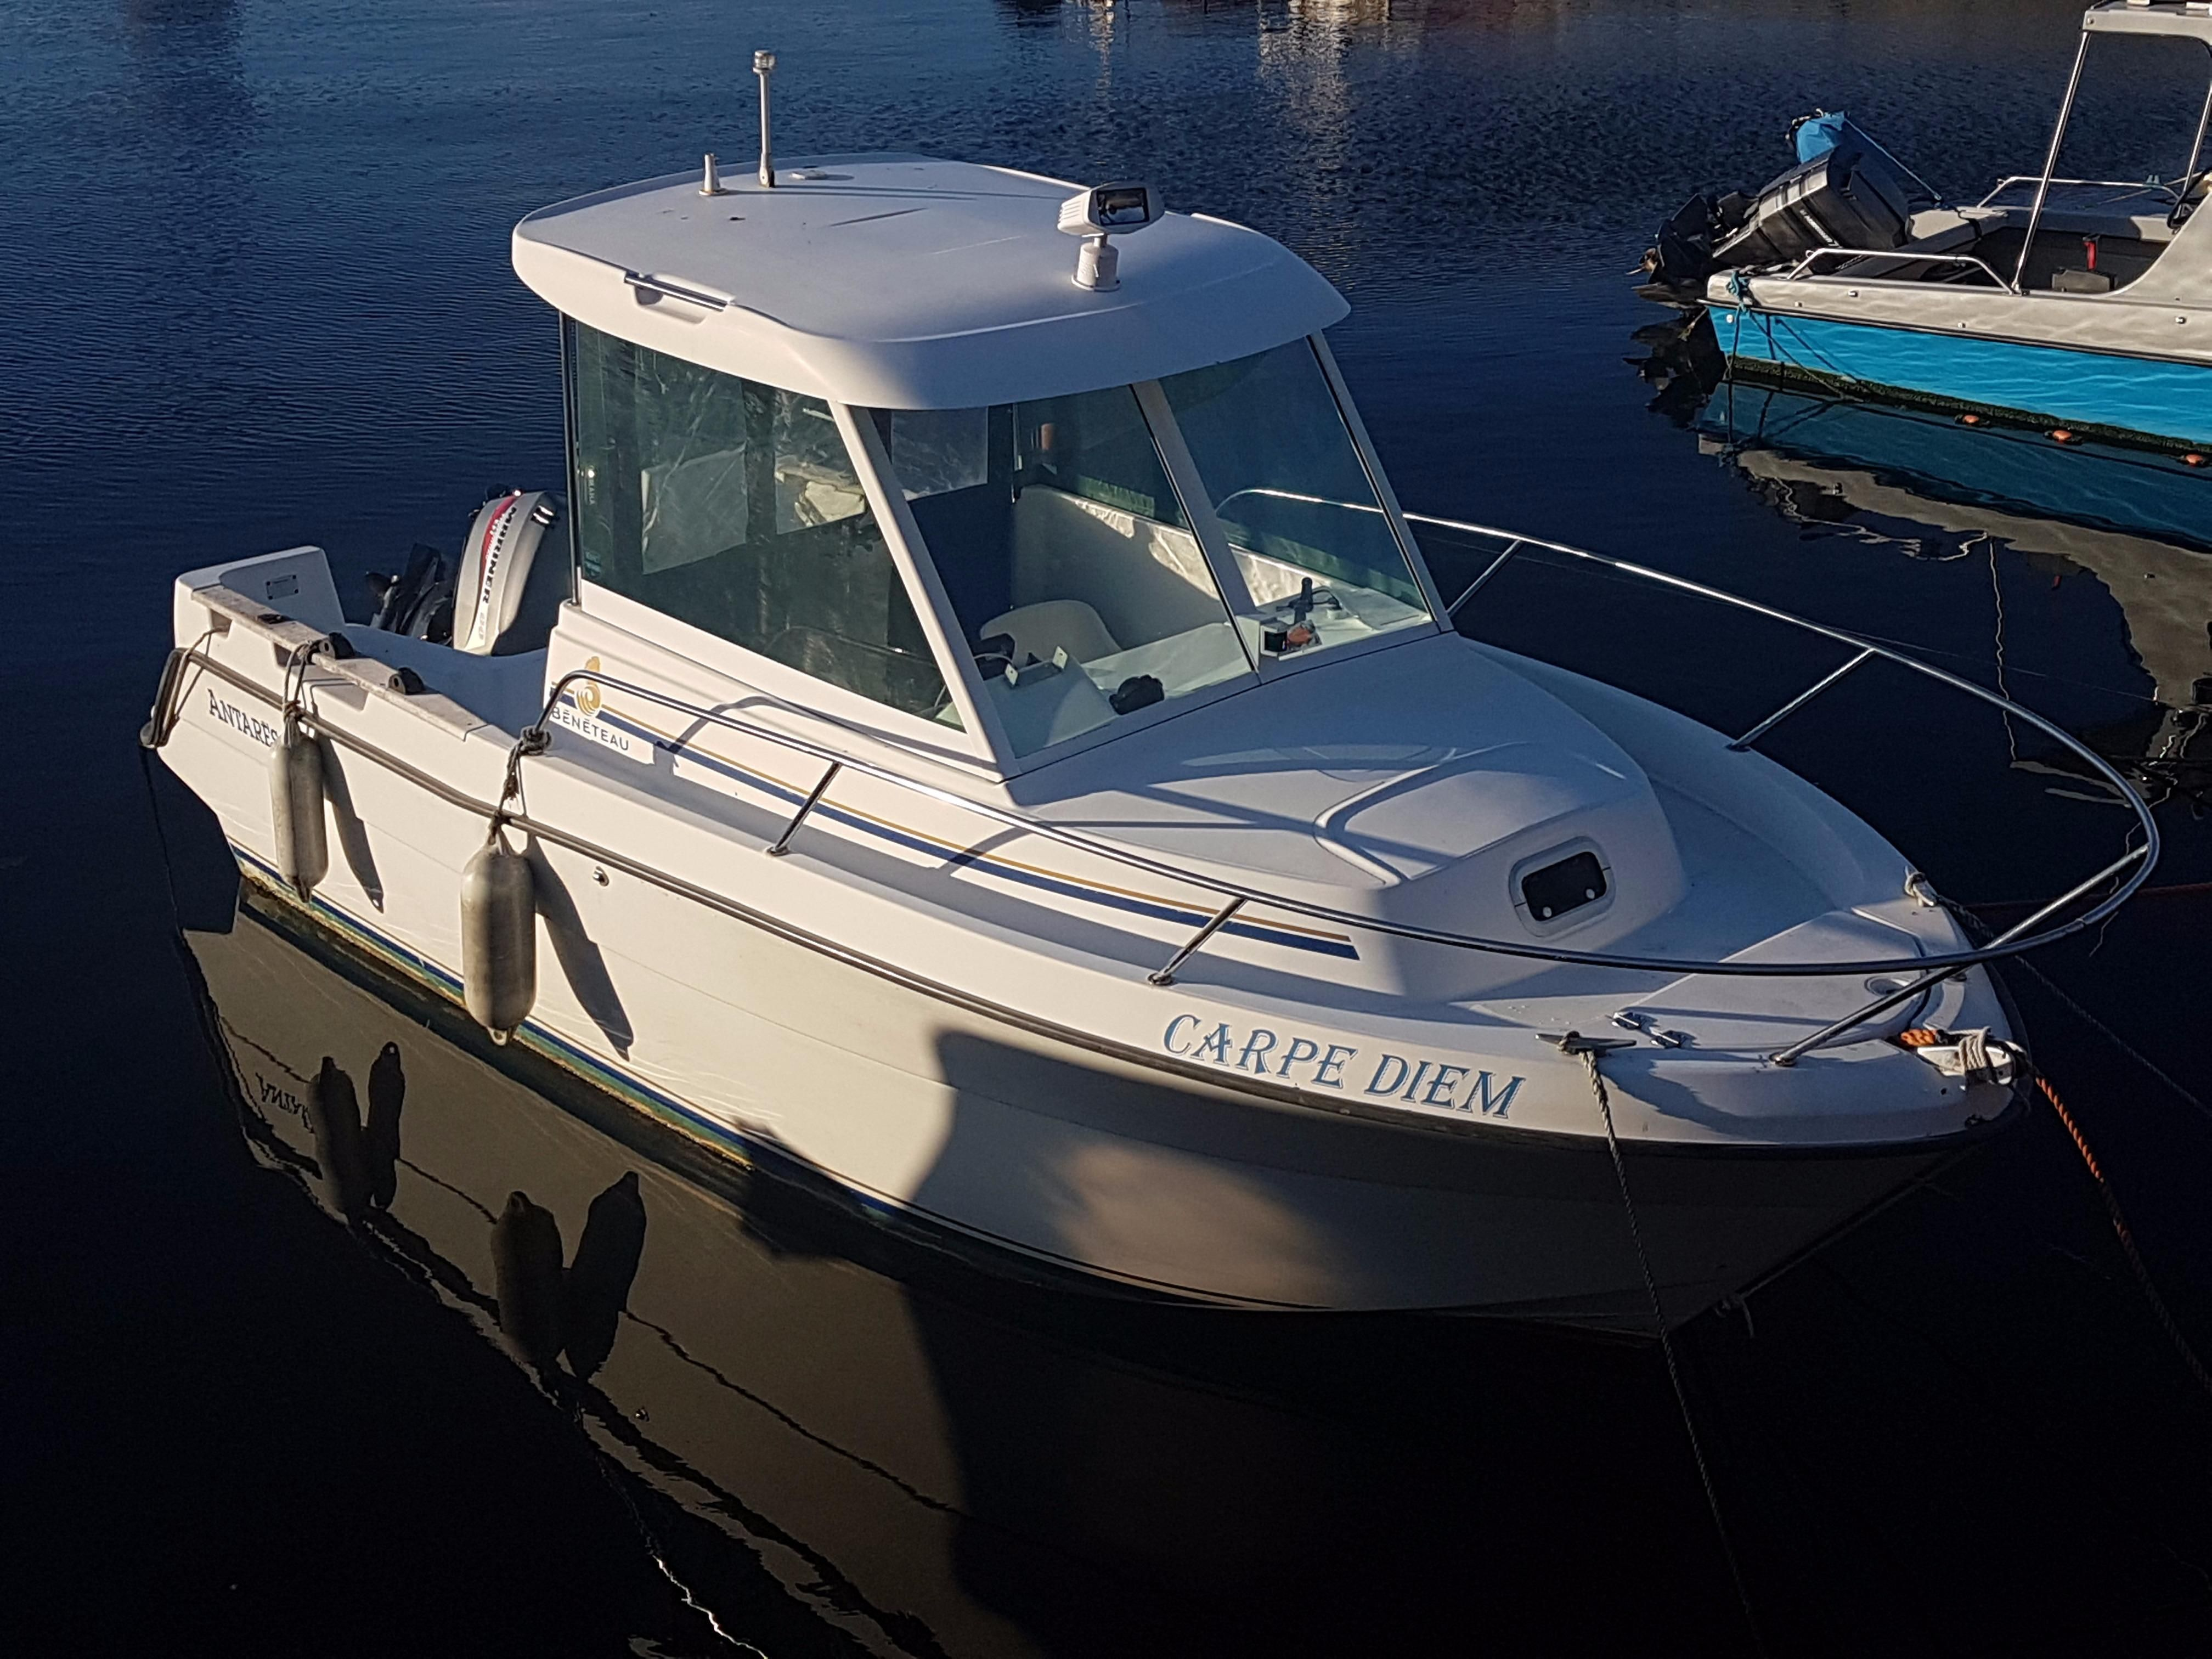 Troon United Kingdom  city images : 2007 Beneteau Antares 600 Power Boat For Sale www.yachtworld.com